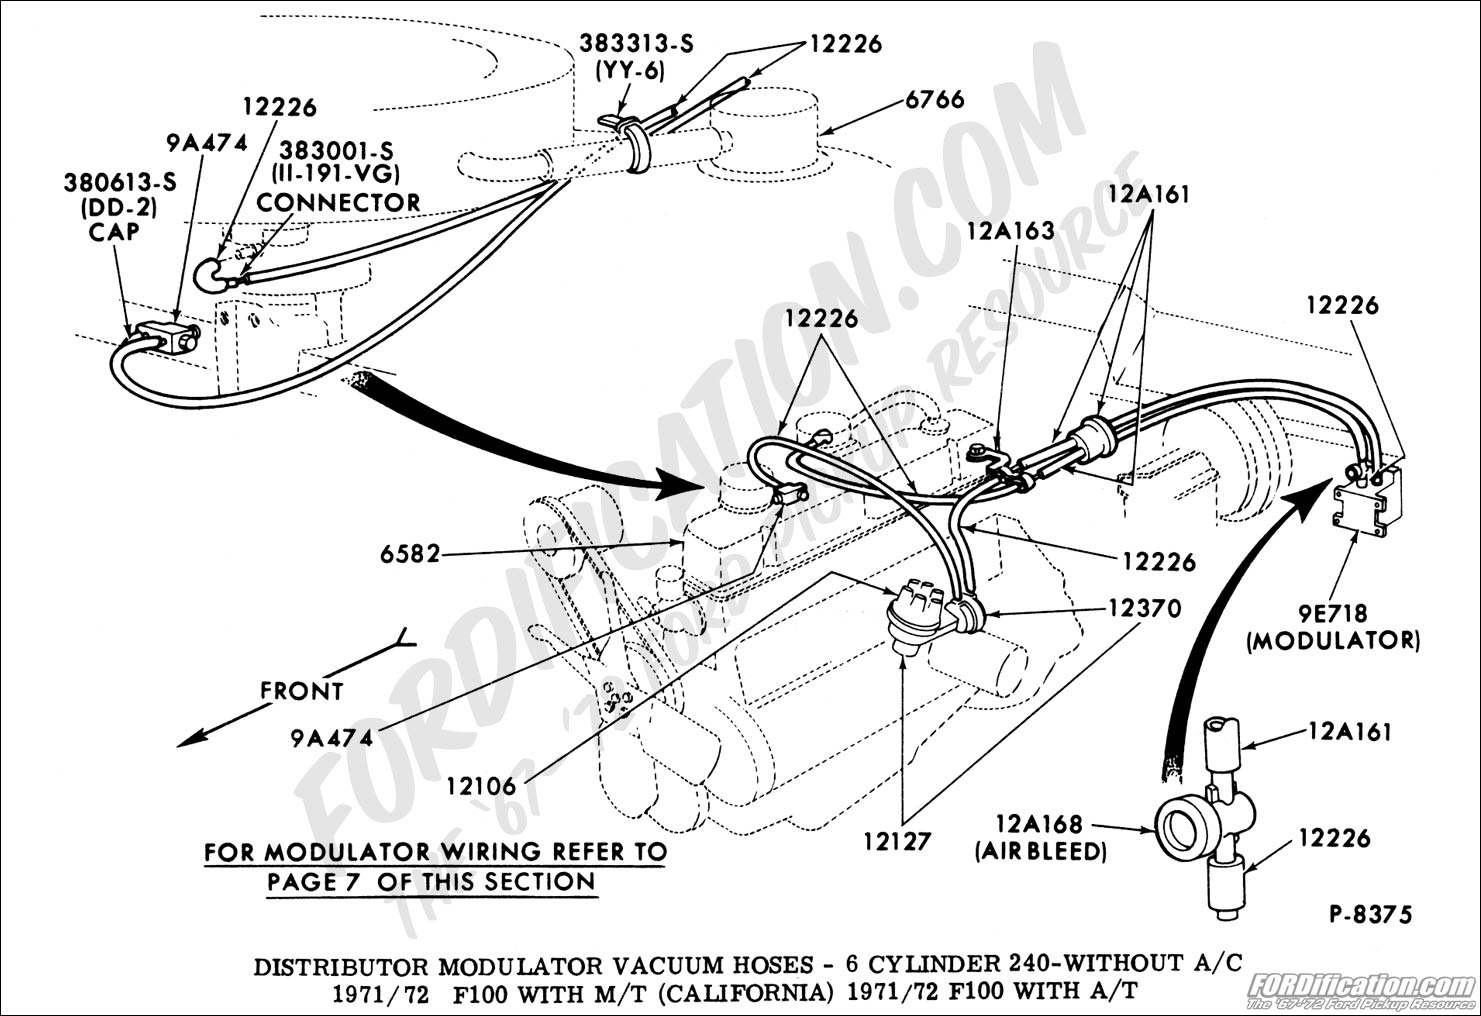 Motorcraft Distributor 12127 Wiring Diagram 43 4cyl Ford Tfi Msd 6al Distributormodulator02 Truck Technical Drawings And Schematics Section I At Cita